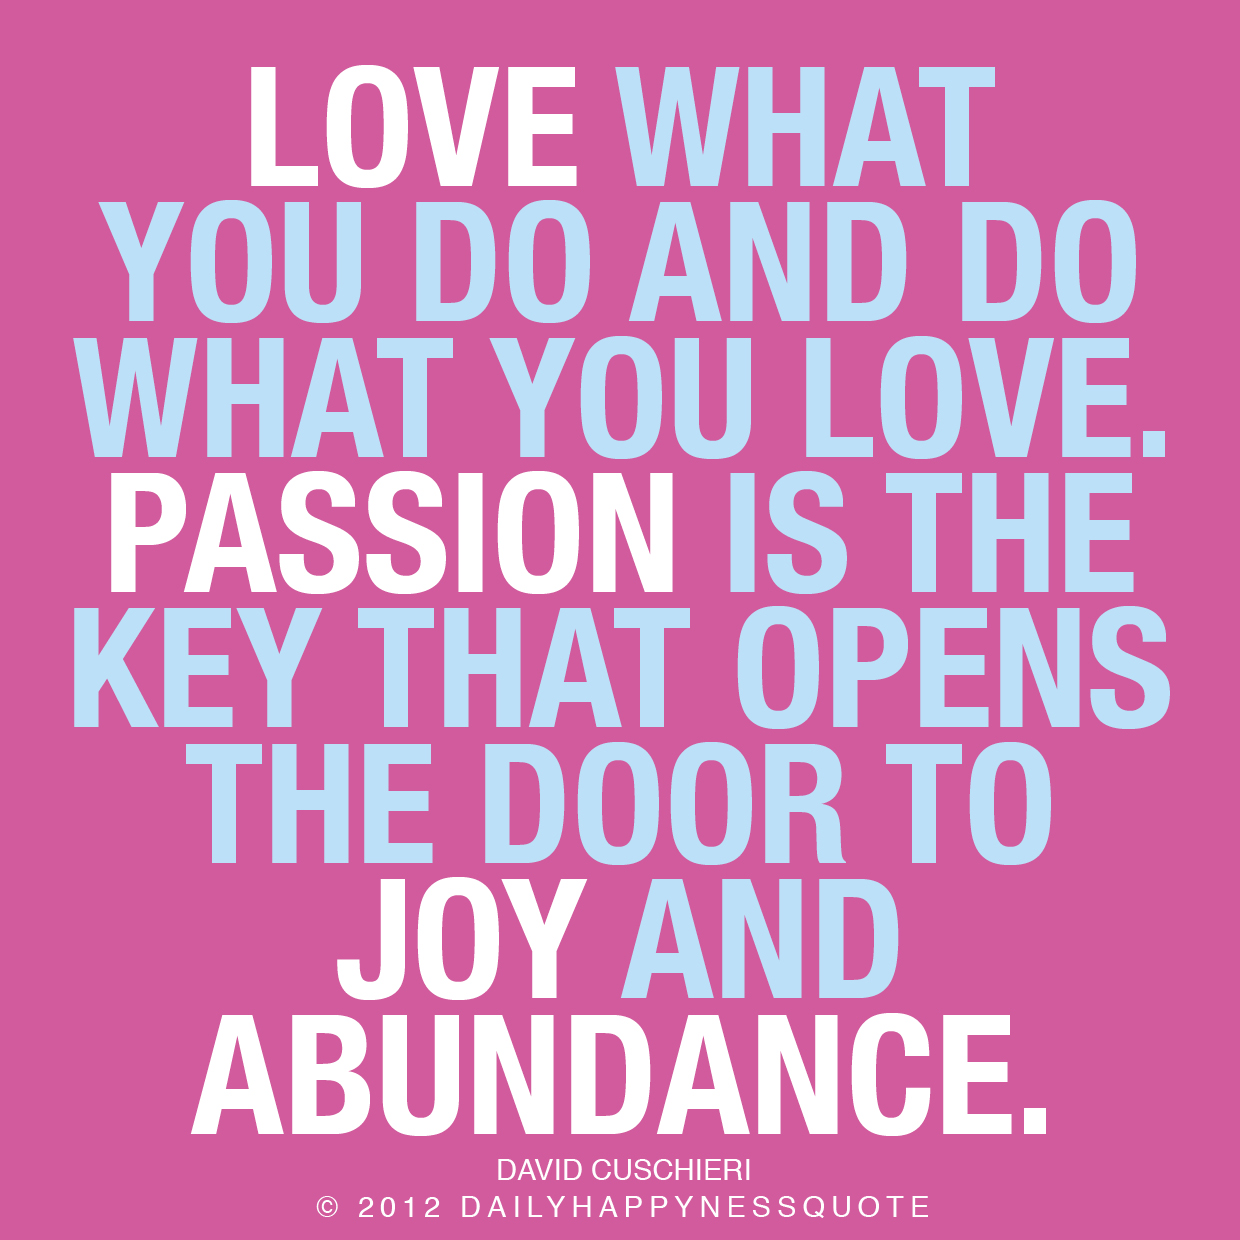 Love What You Do And Do What You Love Passion Is The Key That Opens The